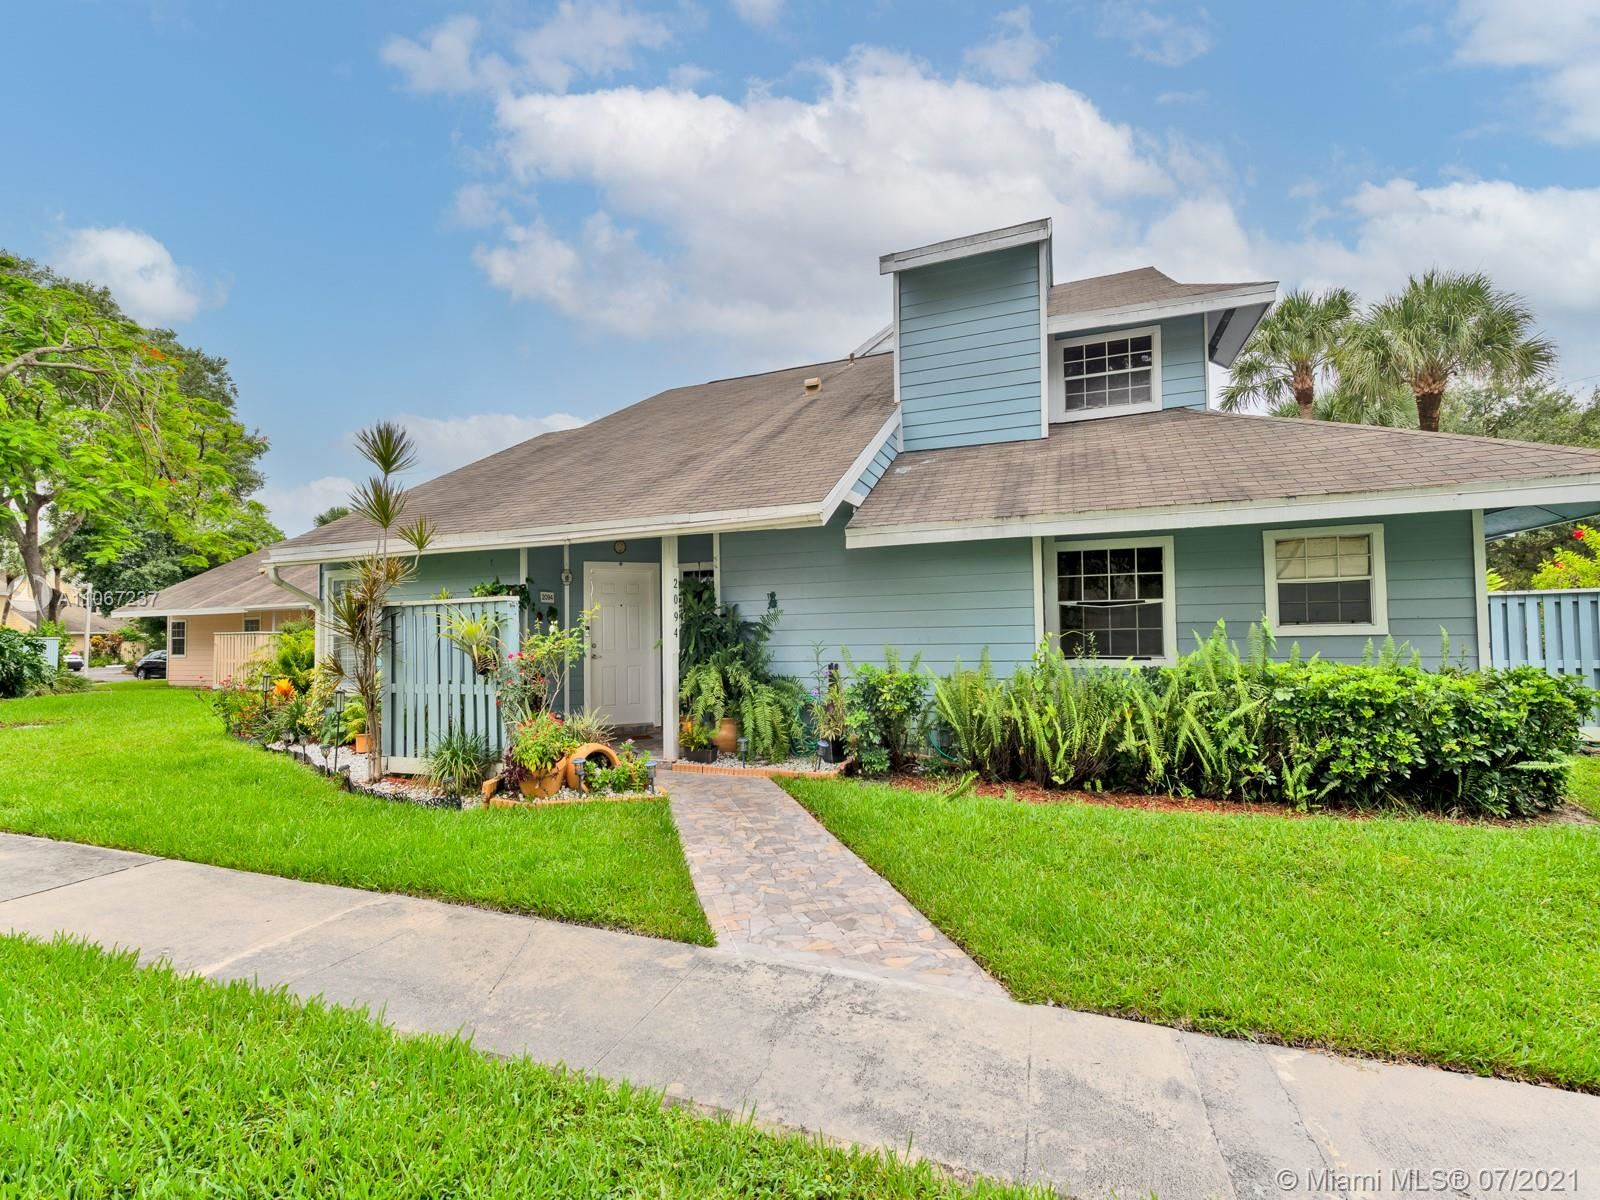 Photo of 2094 SW Champions Way, North Lauderdale, FL 33068 (MLS # A11067237)